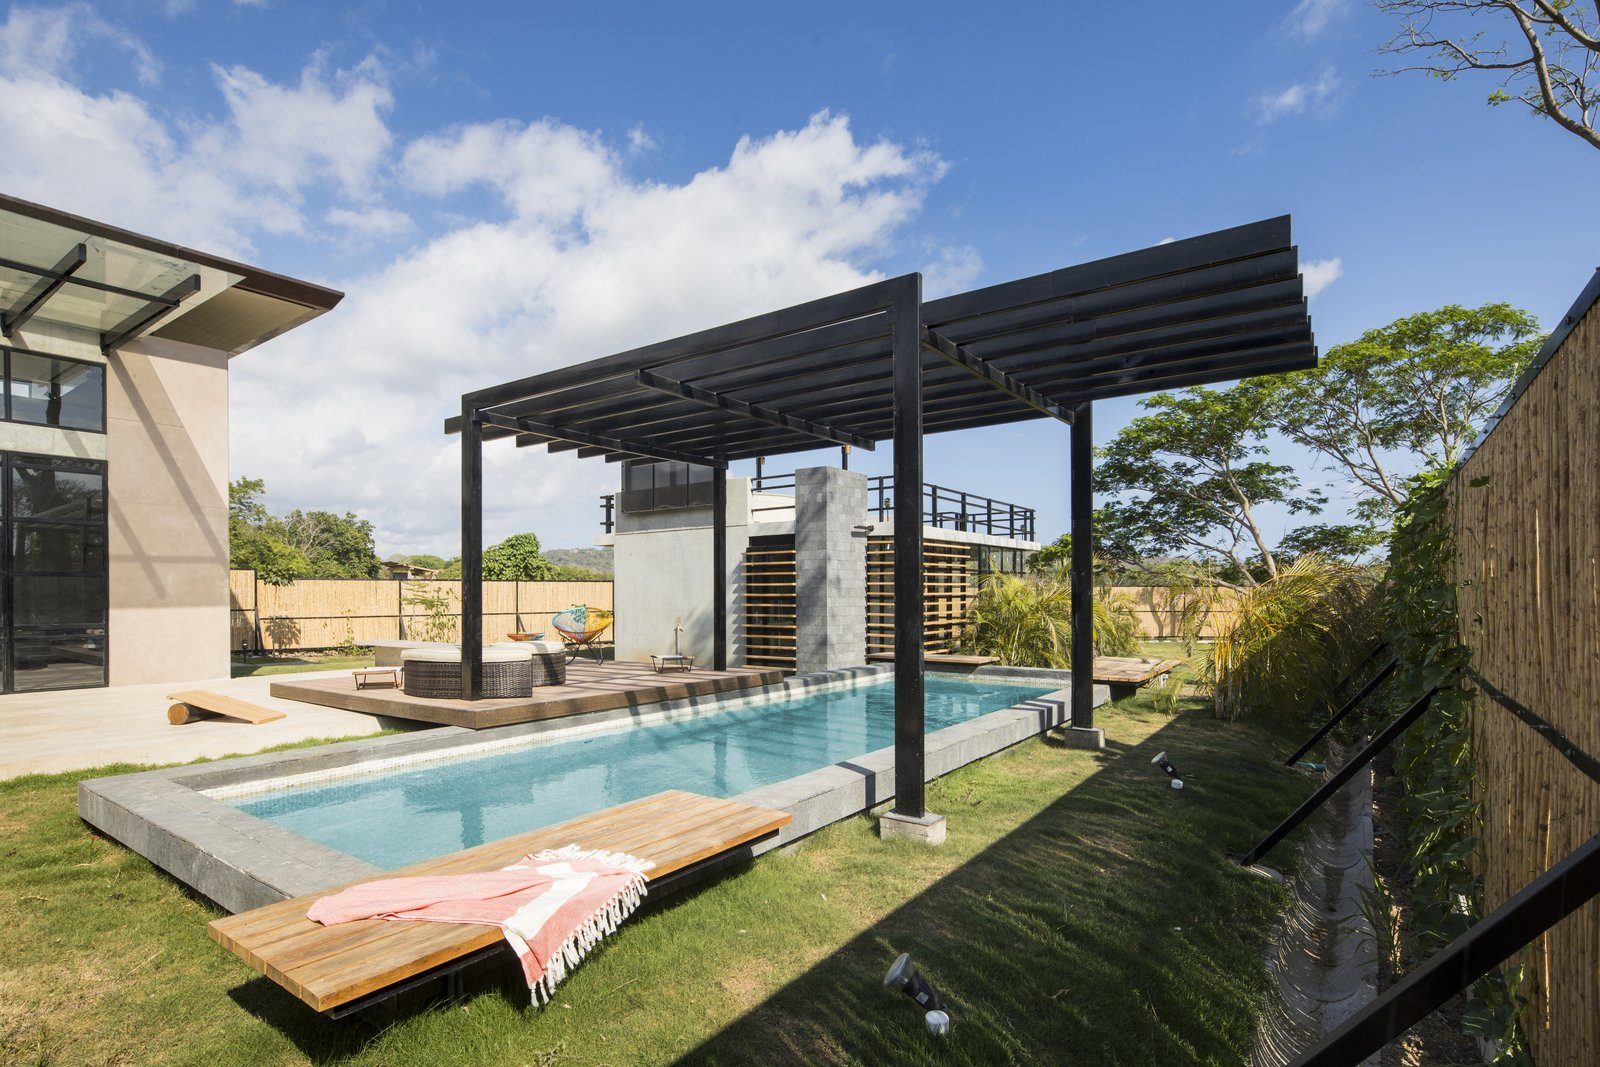 Outdoor, Grass, Wood, Back Yard, Small, Vertical, Shrubs, Lap, Small, Plunge, and Concrete A pergola keeps swimmers cool on hot days.  Outdoor Concrete Plunge Grass Photos from A Concrete Abode Becomes a Surfer's Paradise